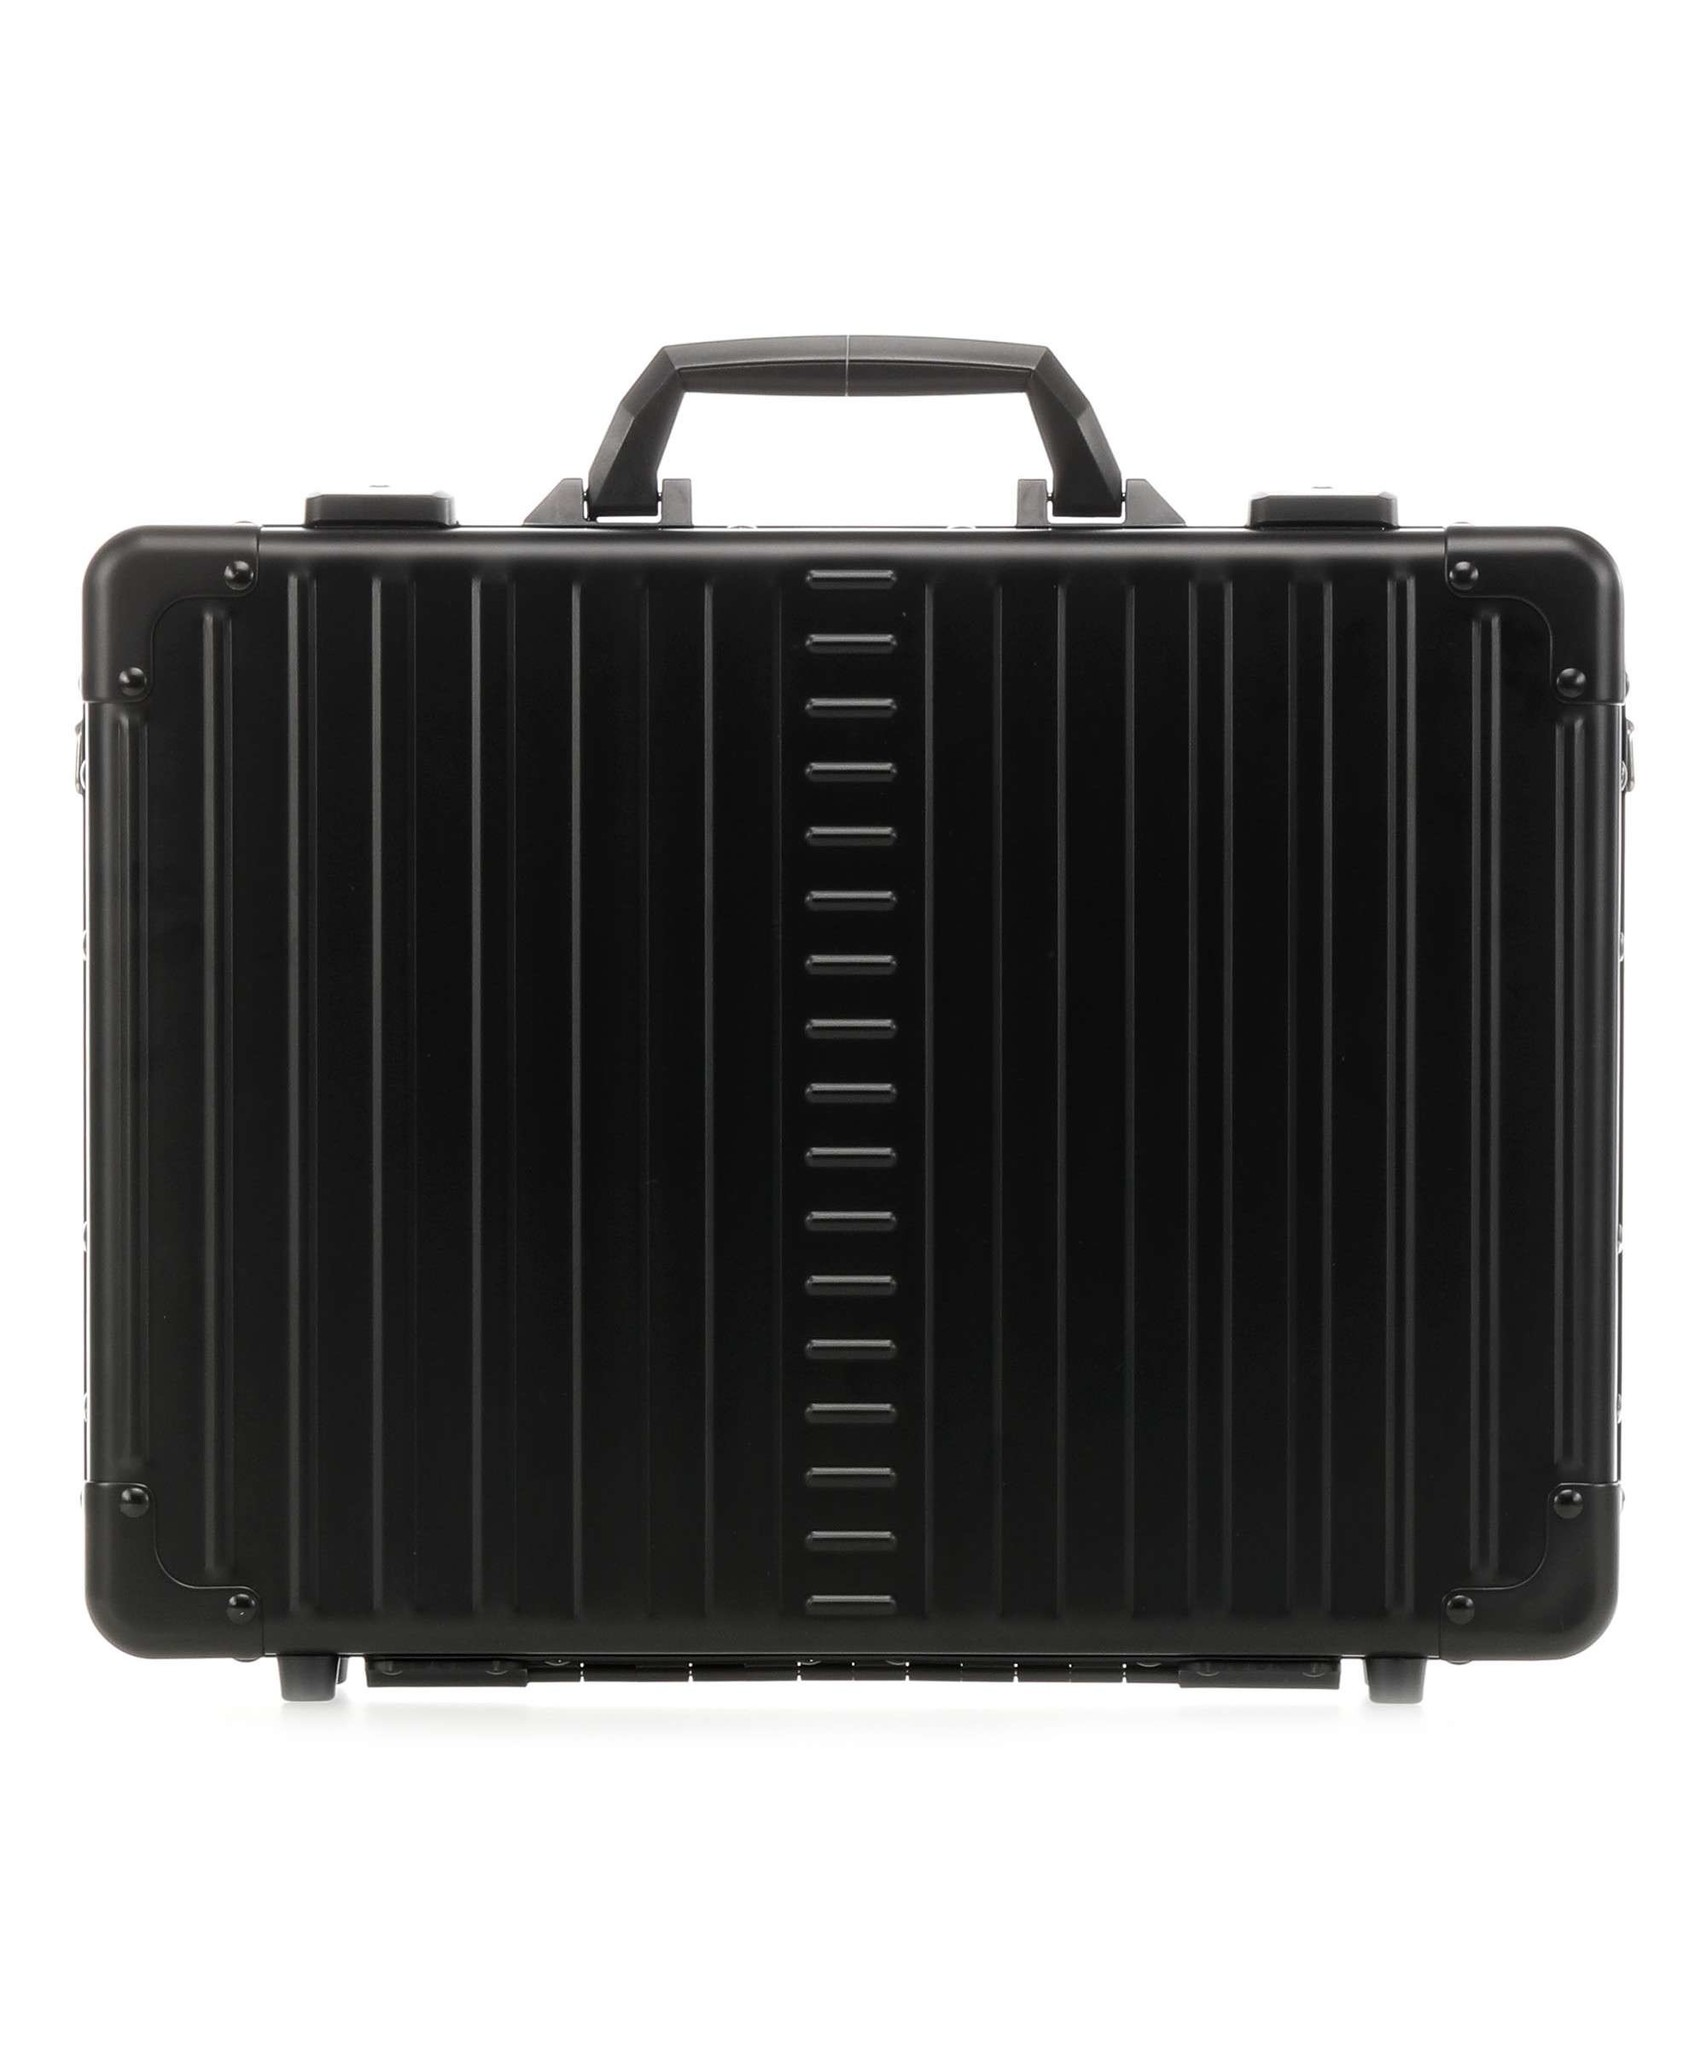 Aleon Aleon 17 Aluminium Attache Laptop koffer met 15 inch laptopvak - Onyx zwart